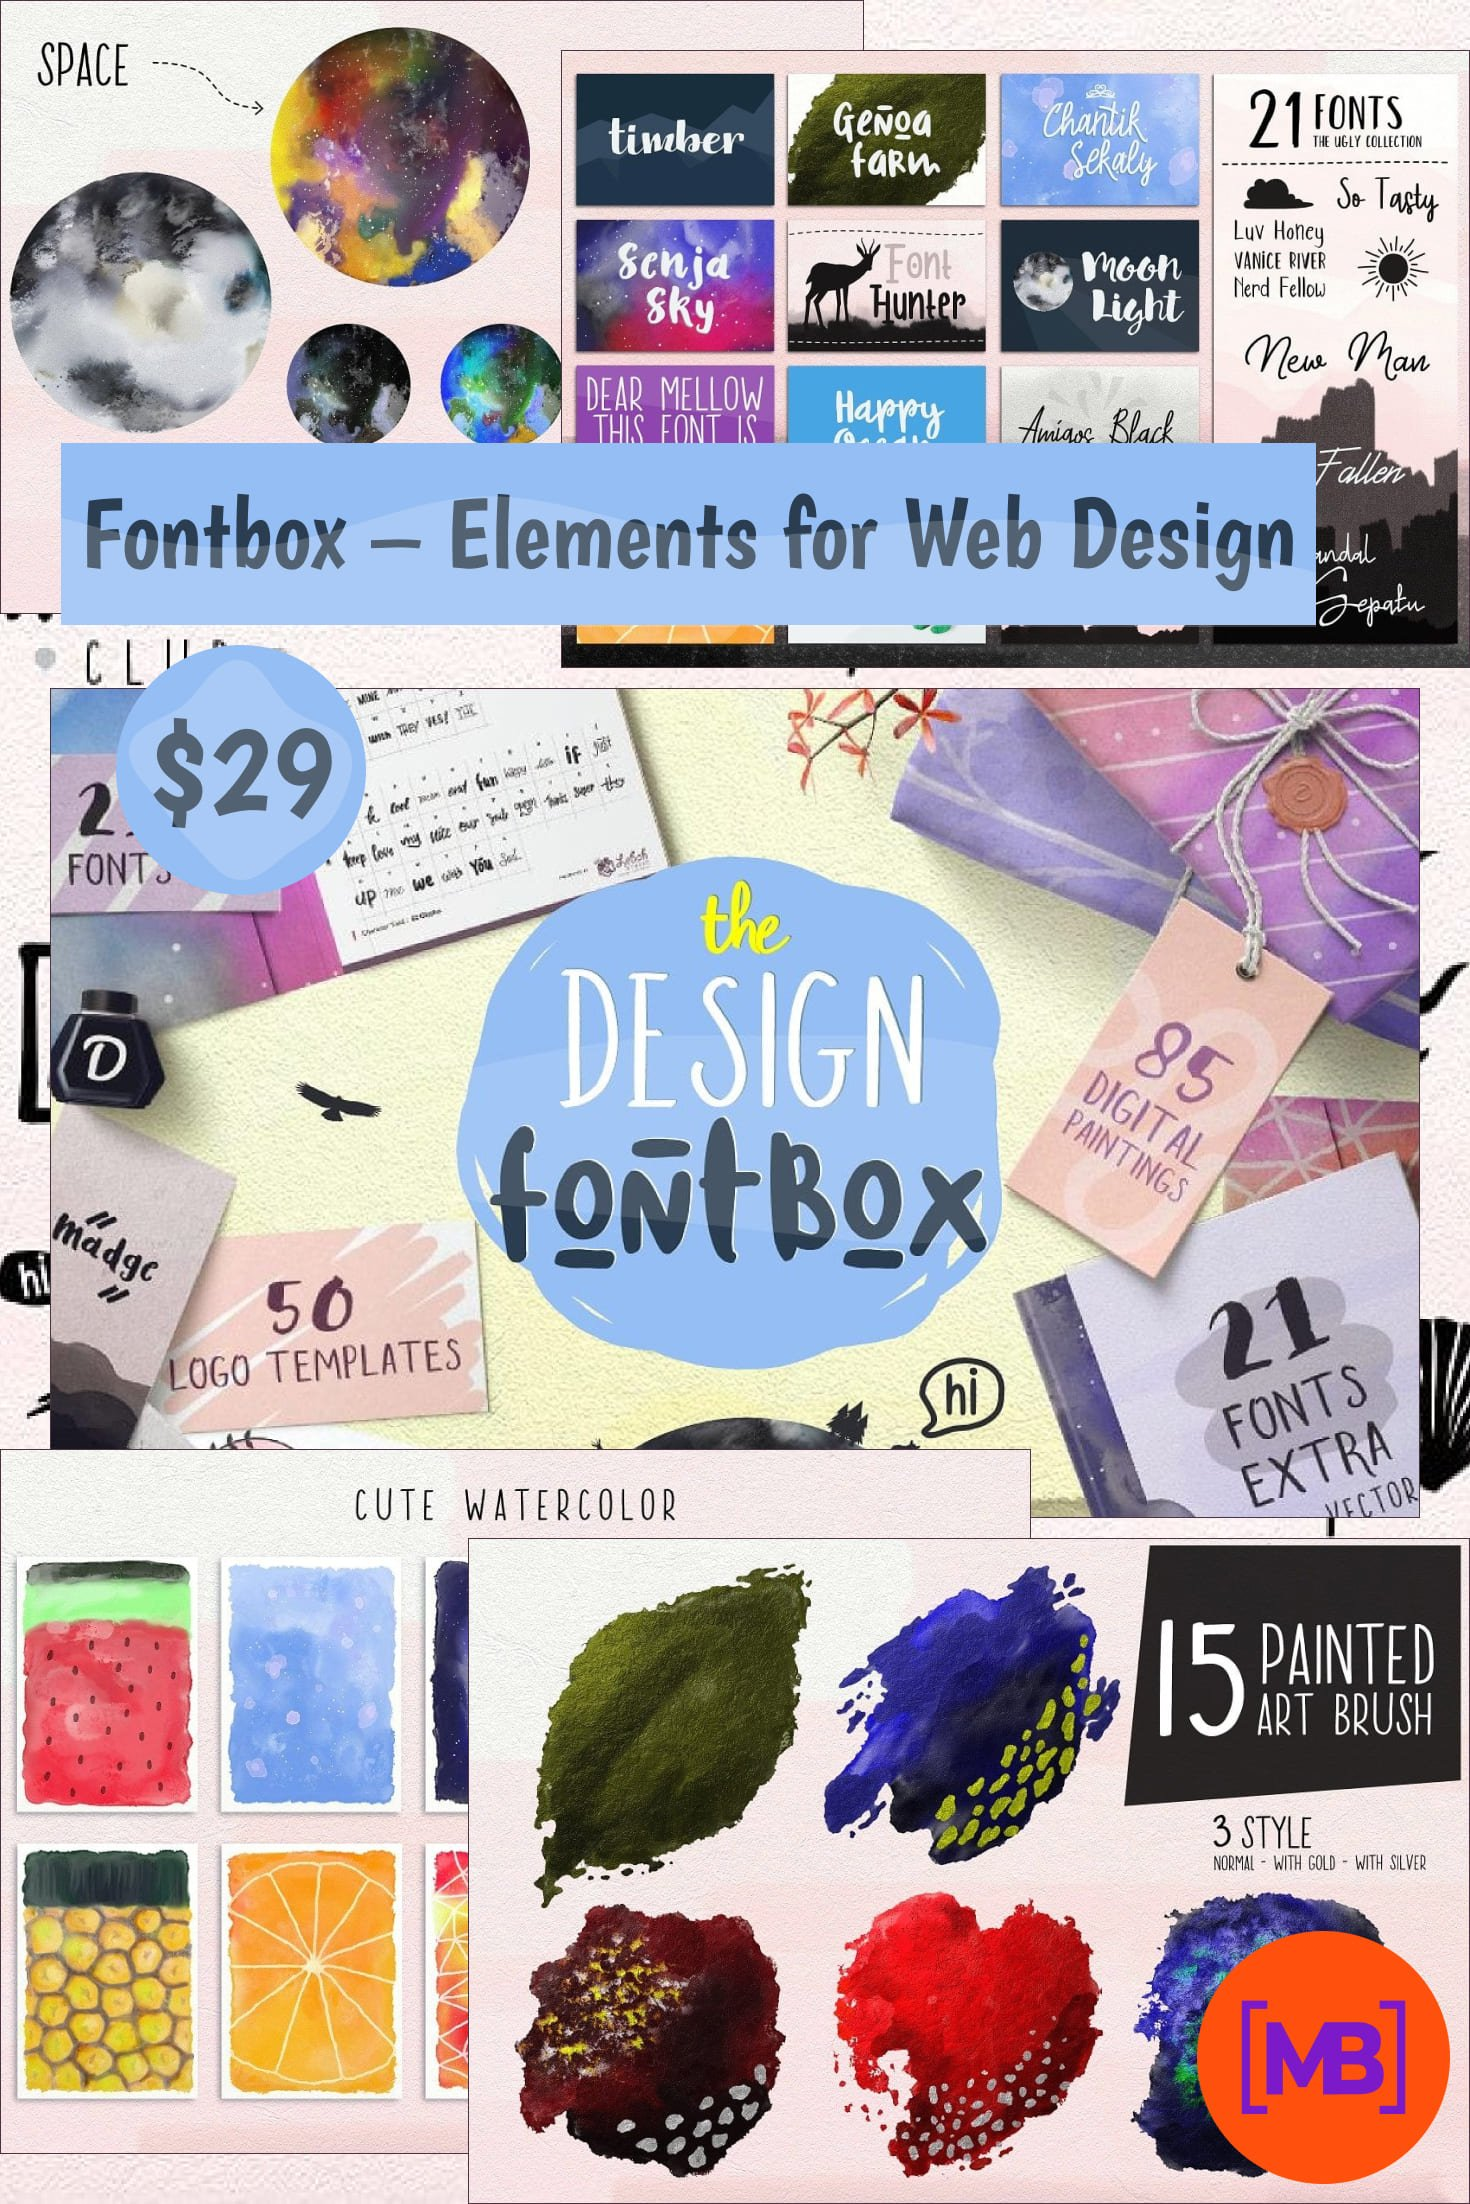 Fontbox - Elements for Web Design - Fonts, Logos, Watercolors. Collage Image.